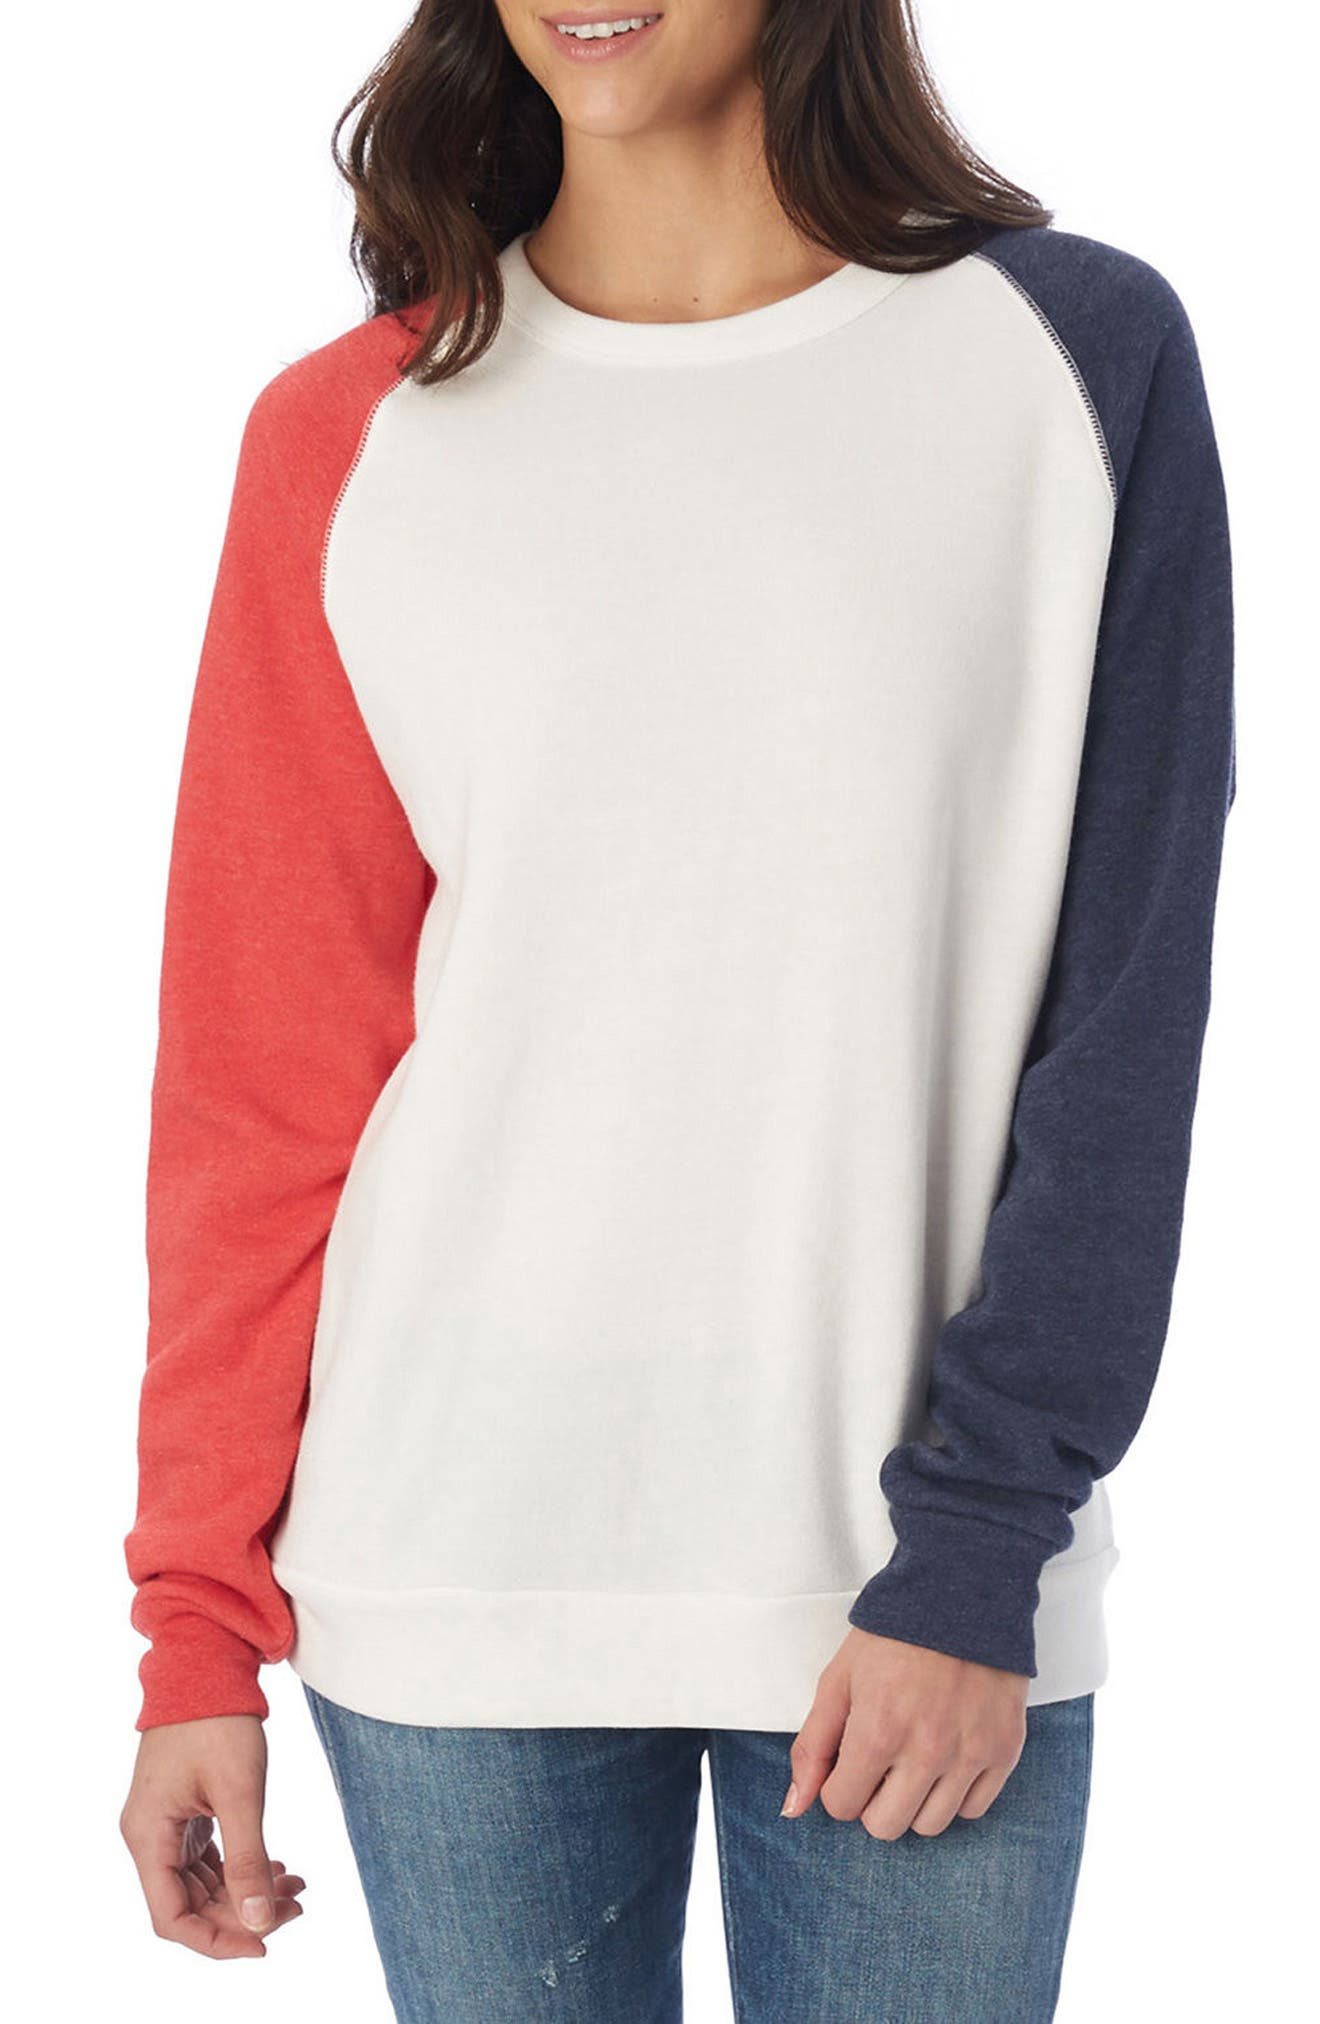 USA Champ Sweatshirt,                             Main thumbnail 1, color,                             905